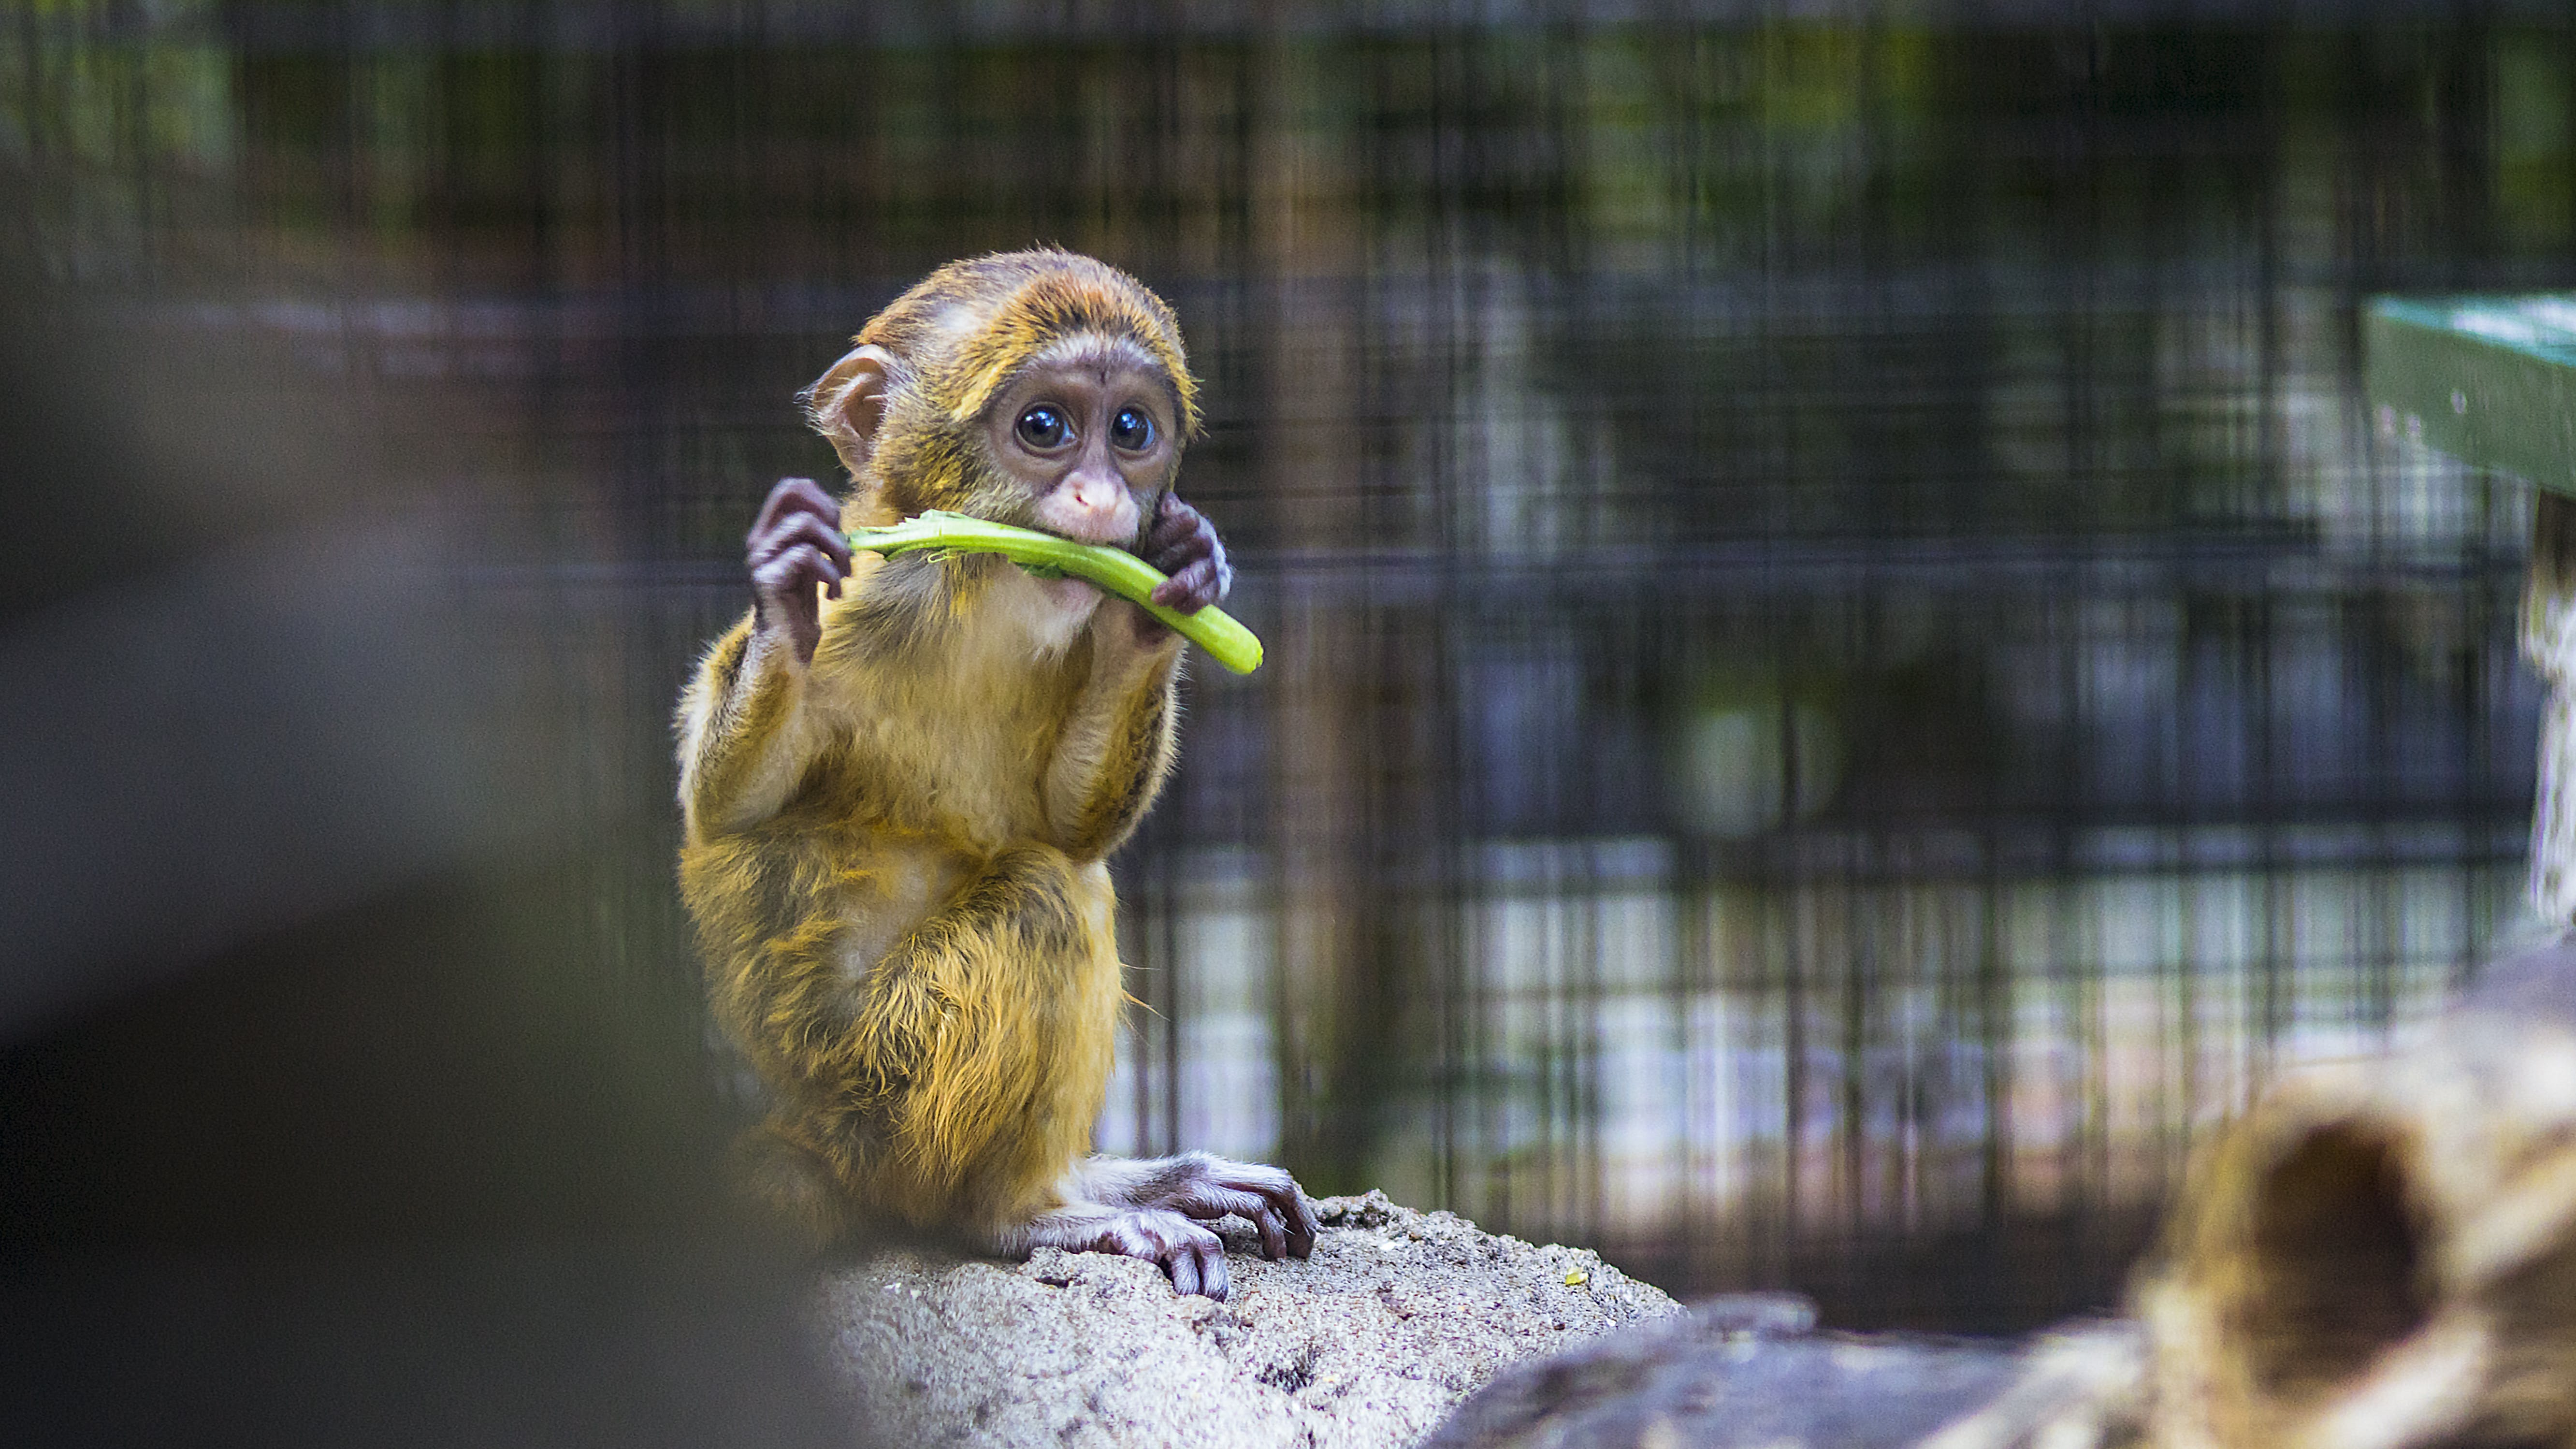 Photography of a Baby Monkey Eating Vegetable